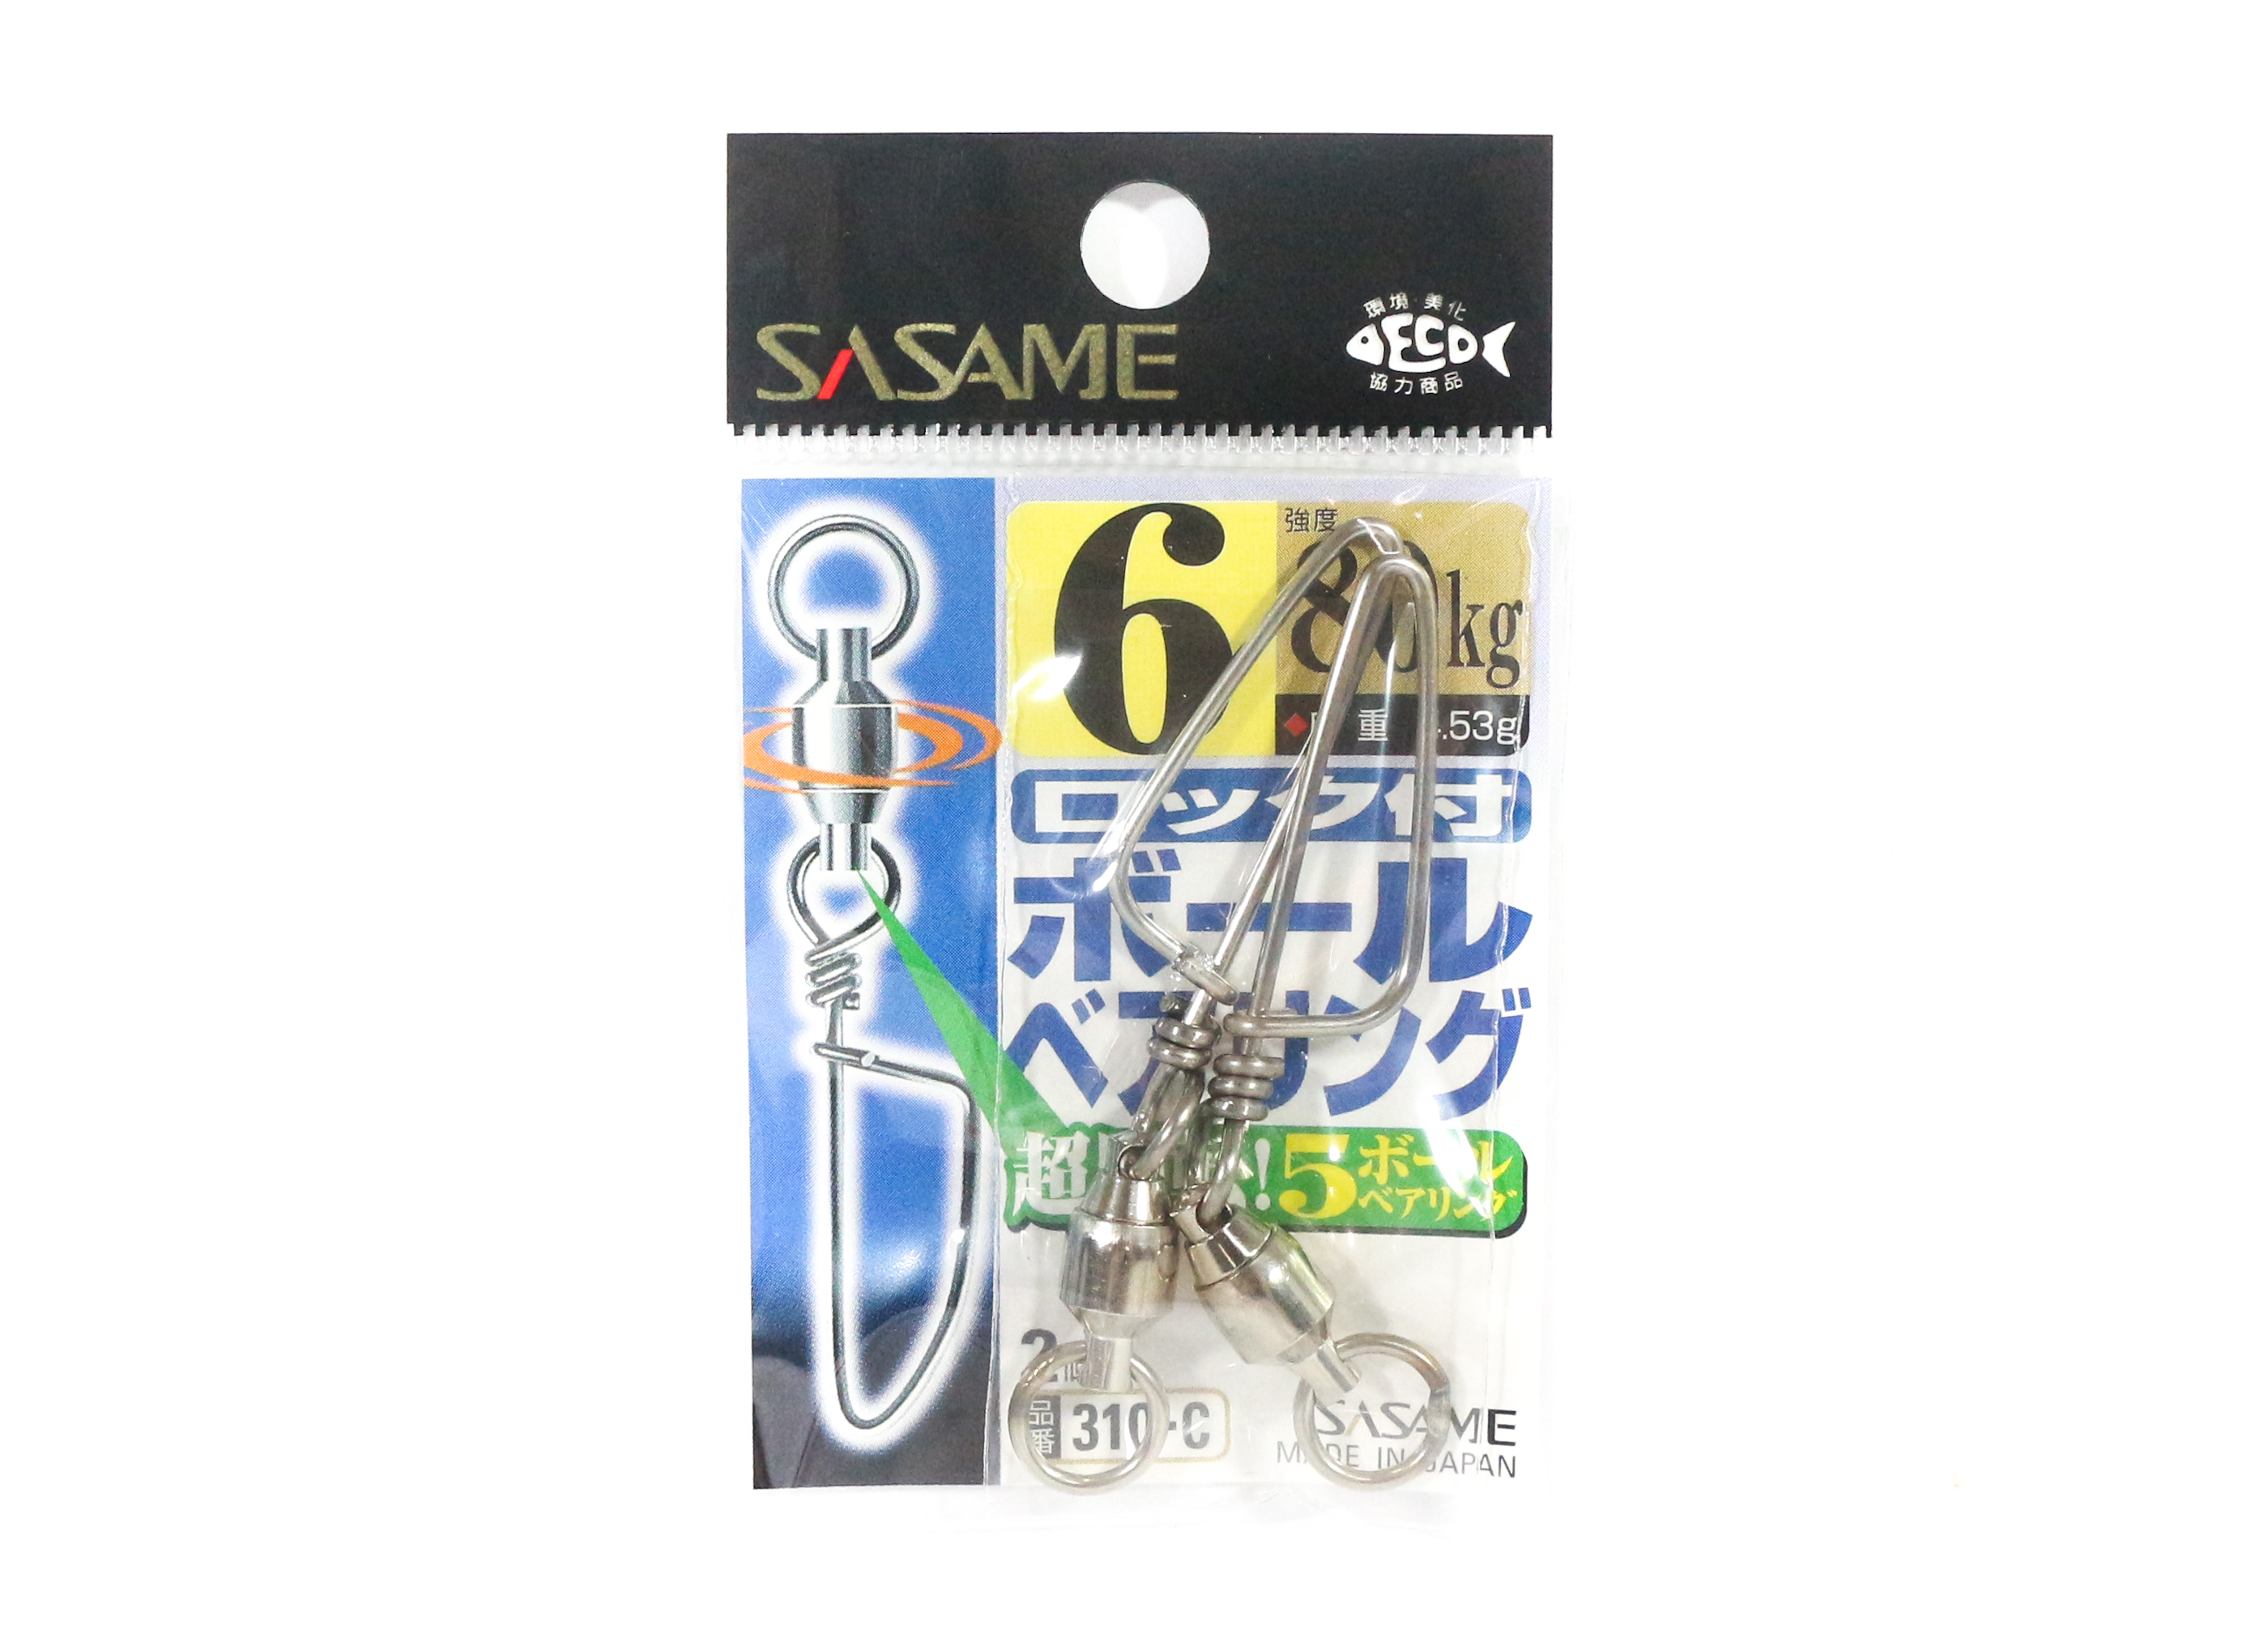 Sasame 310-C Ball Bearing Snap Swivels High Quality Size 6 (1690)